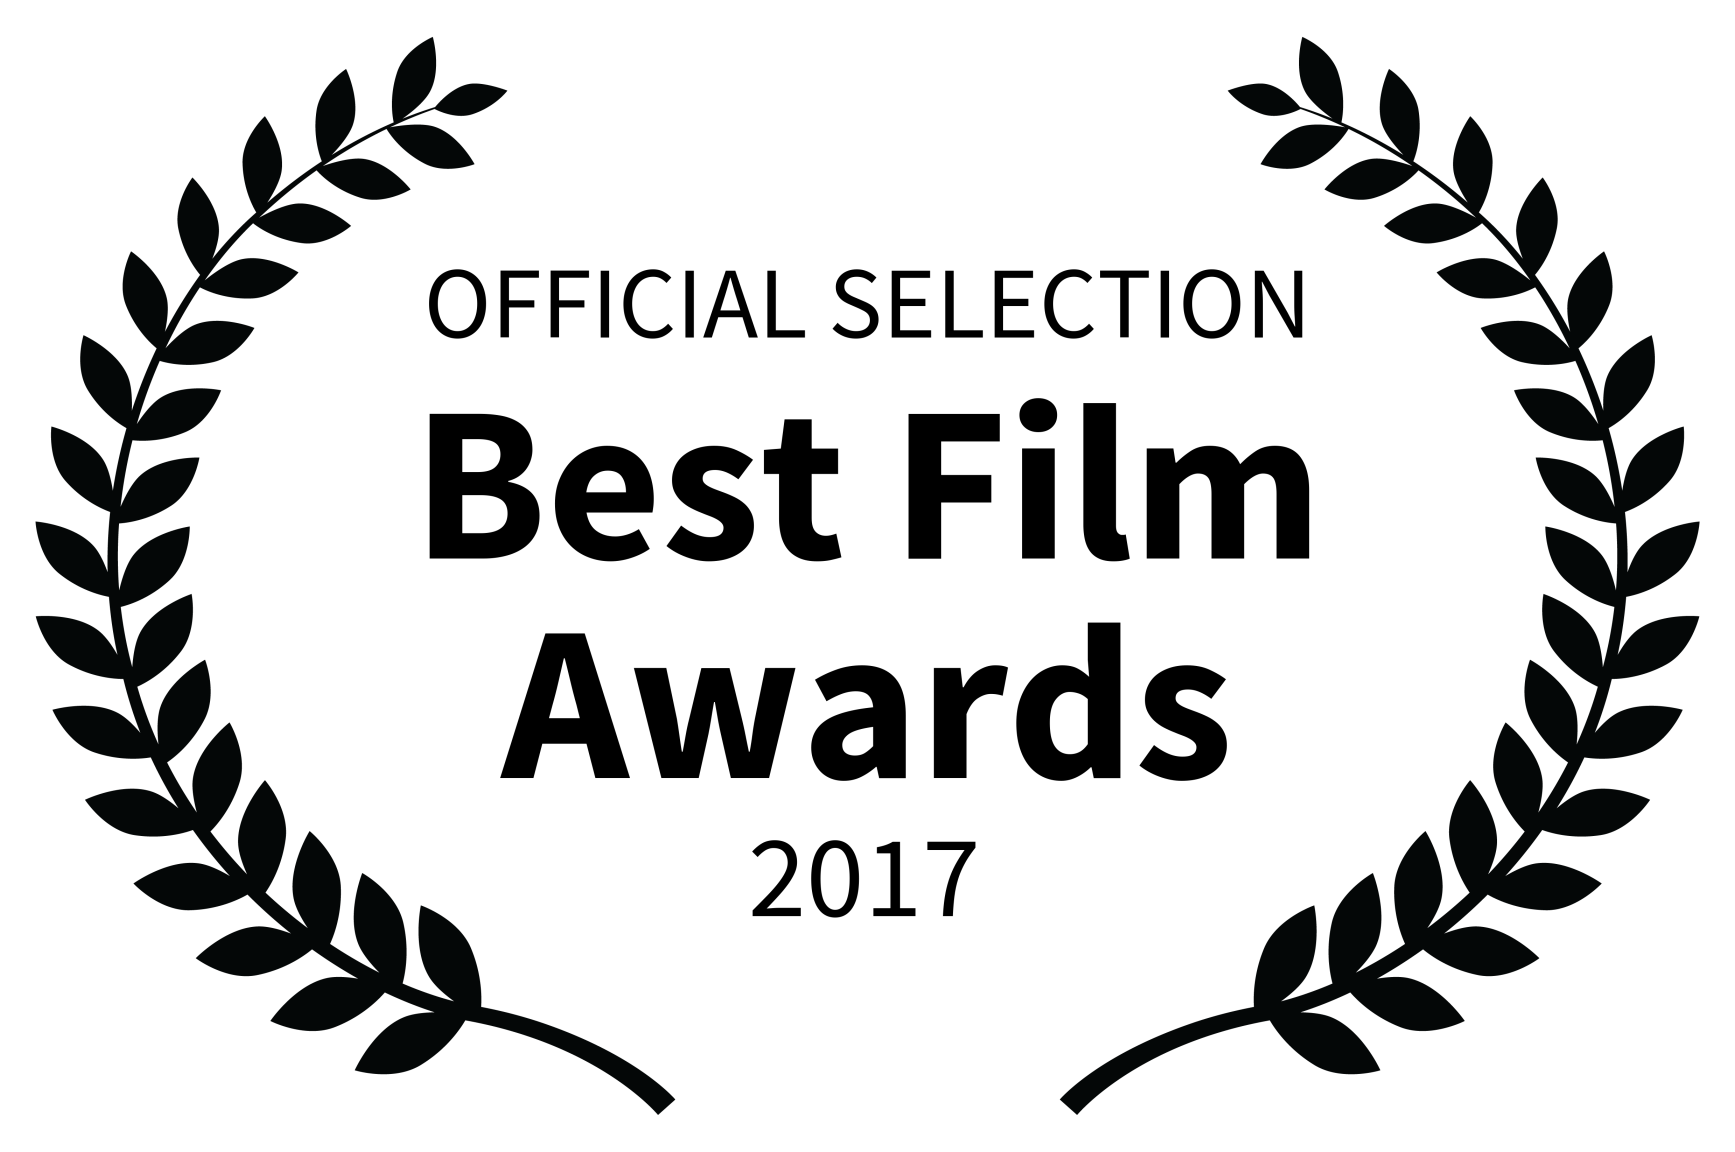 OFFICIAL SELECTION - Best Film Awards - 2017